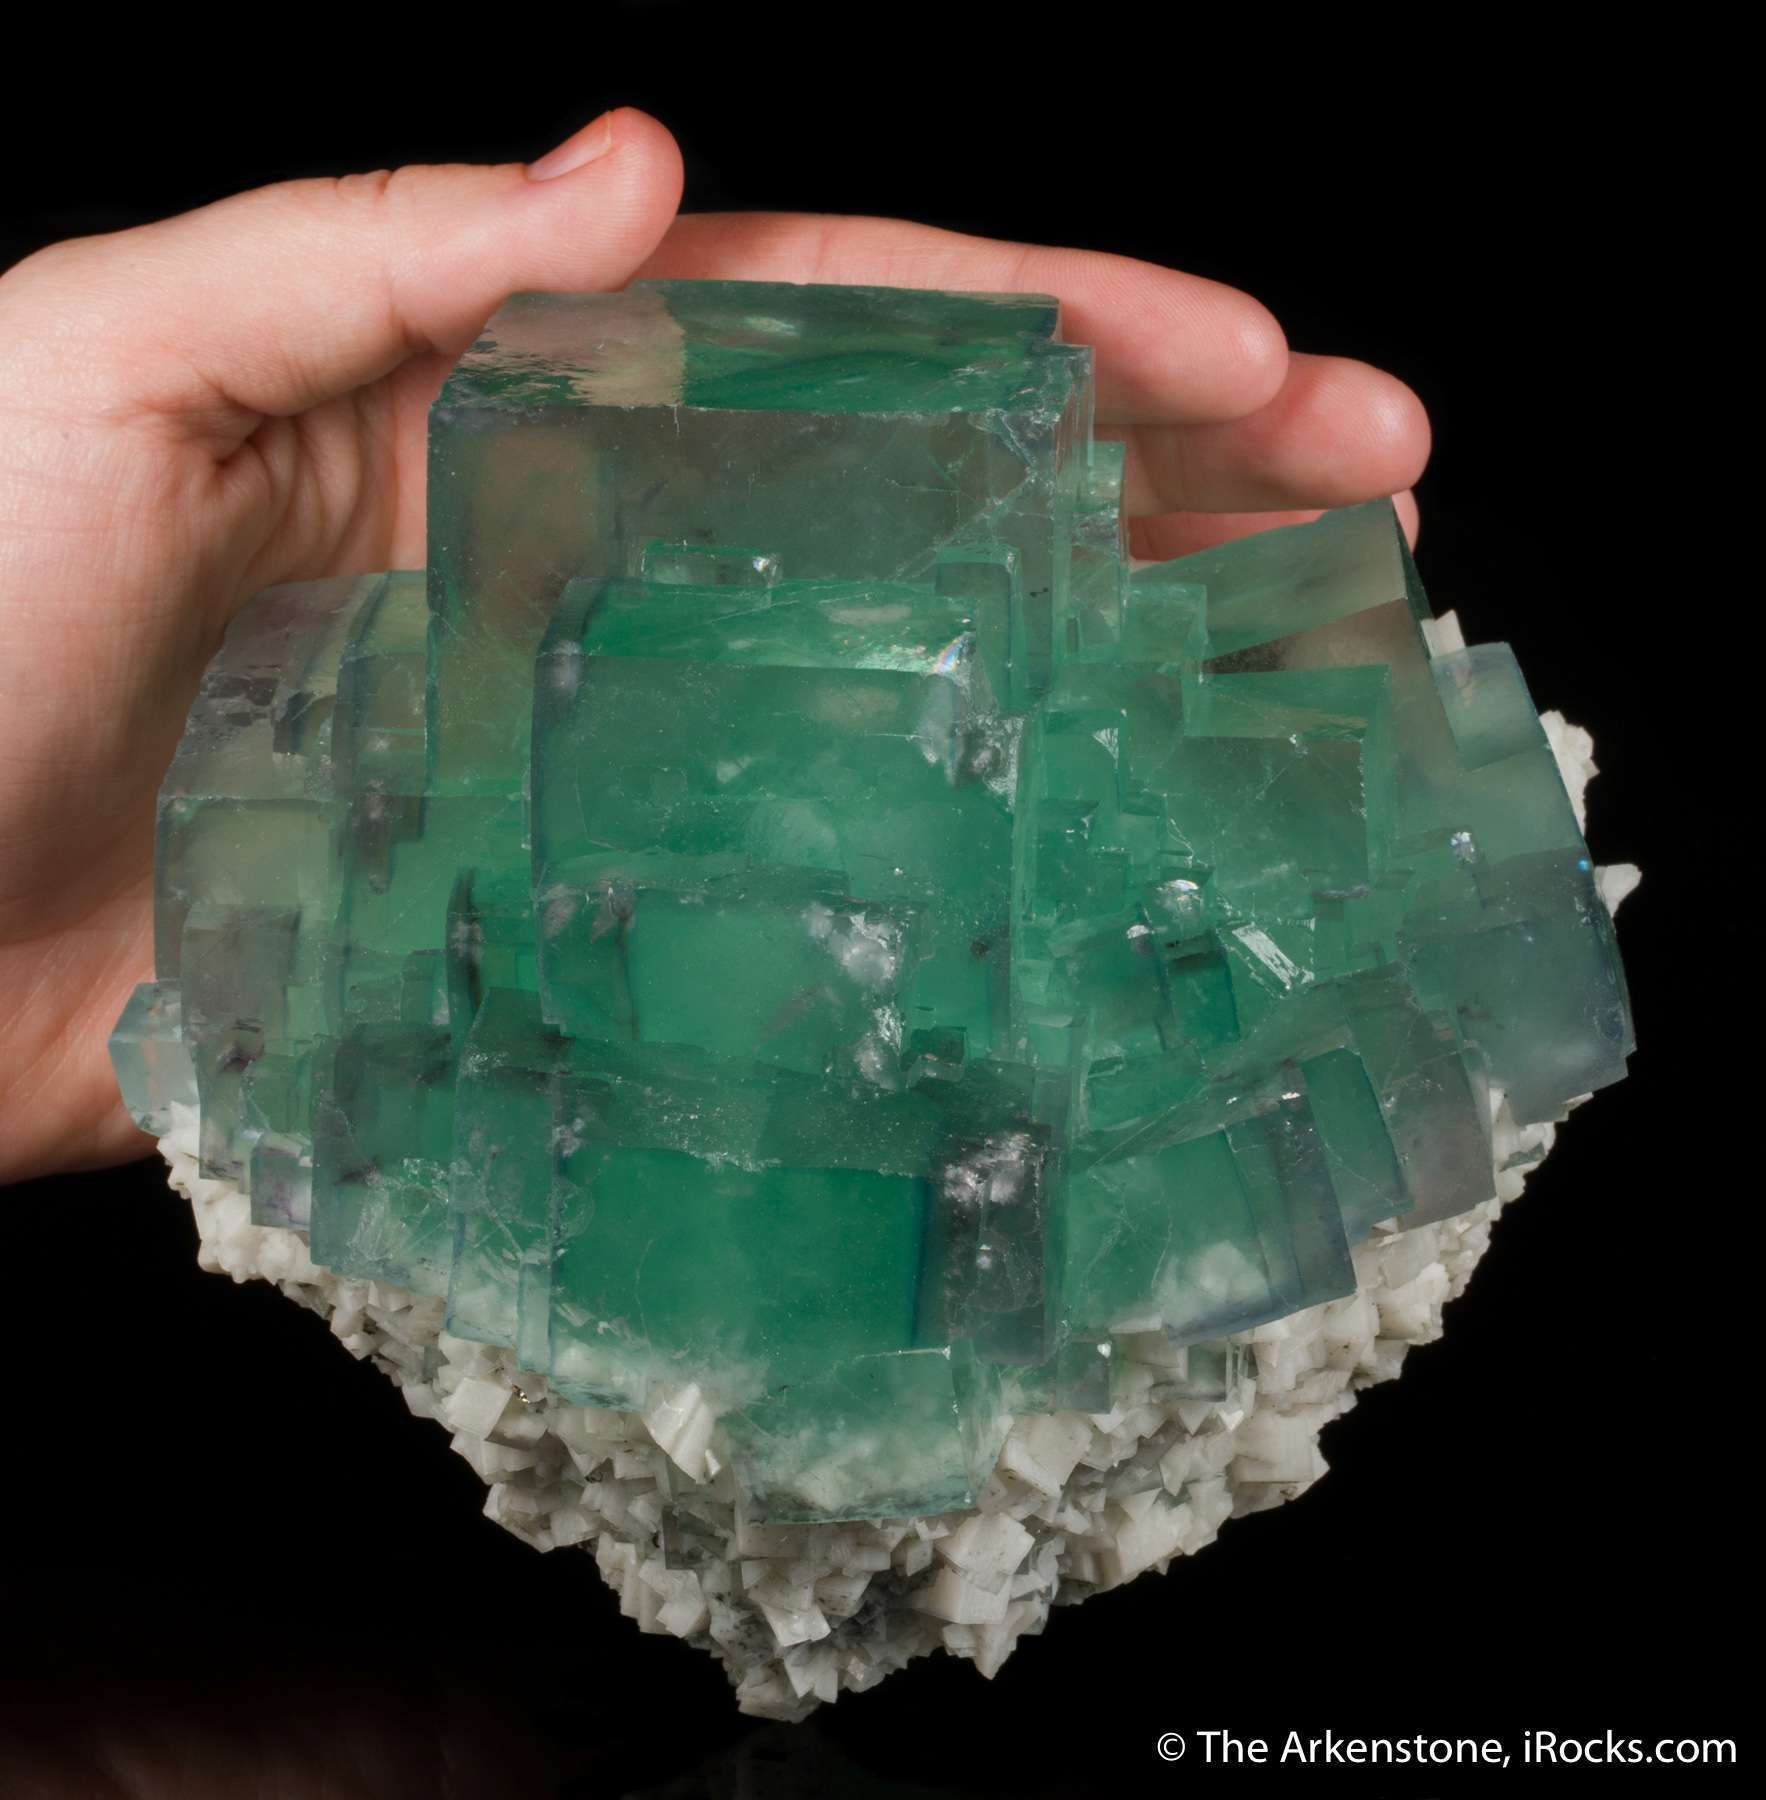 Yaogangxian produced significance way fluorites recent years This came